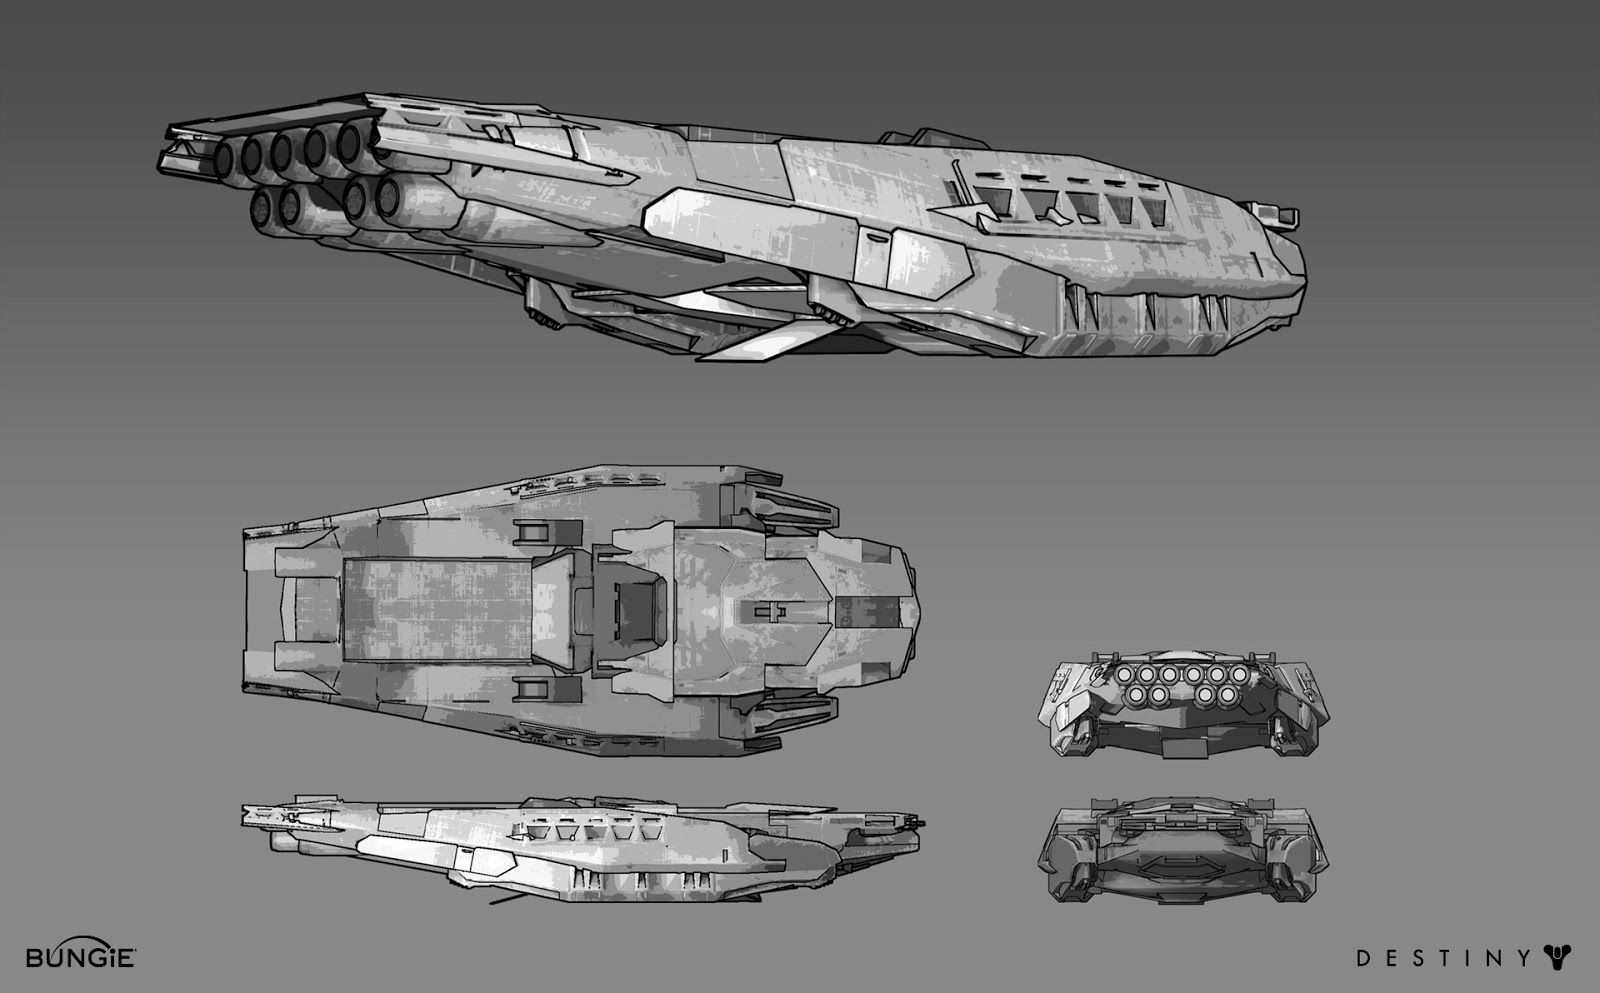 Spacecraft Designs From Destiny What Do You Think Sleek Looking